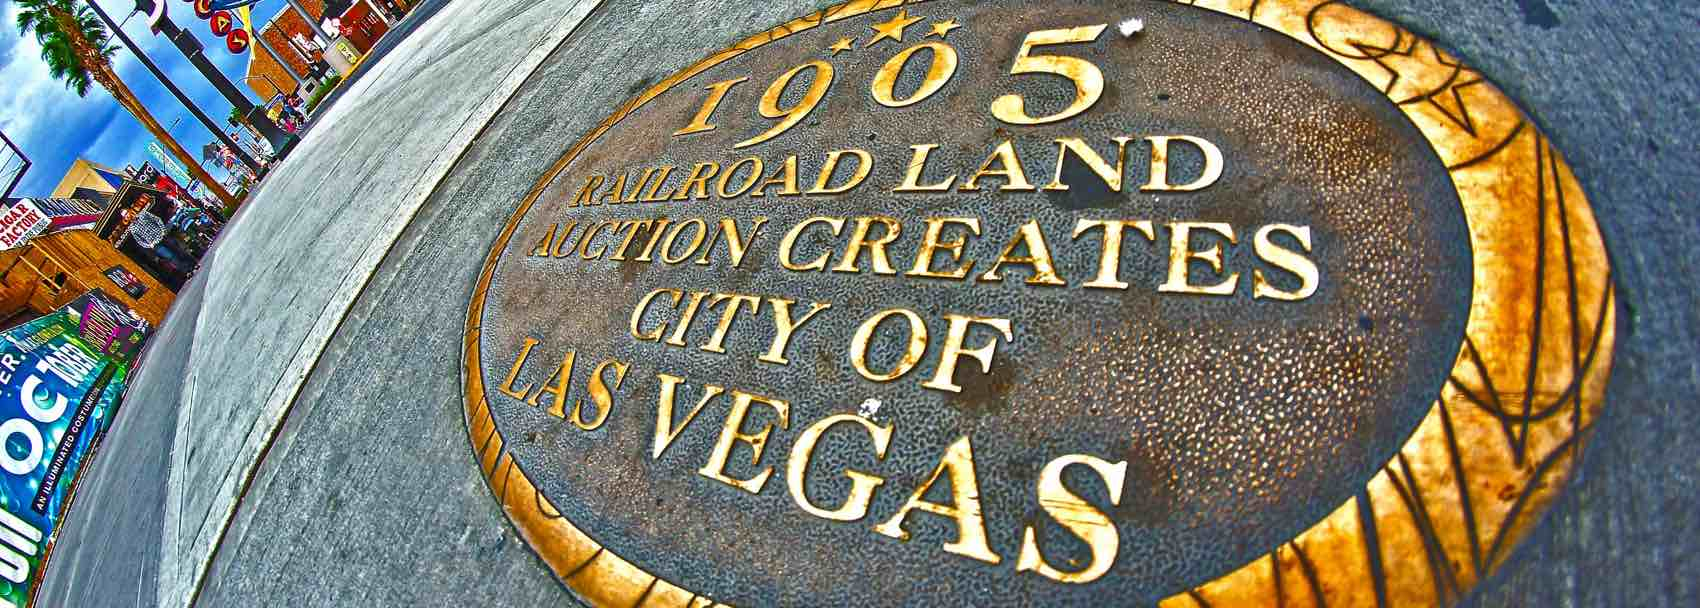 Las Vegas welcomes millions of visitors every year